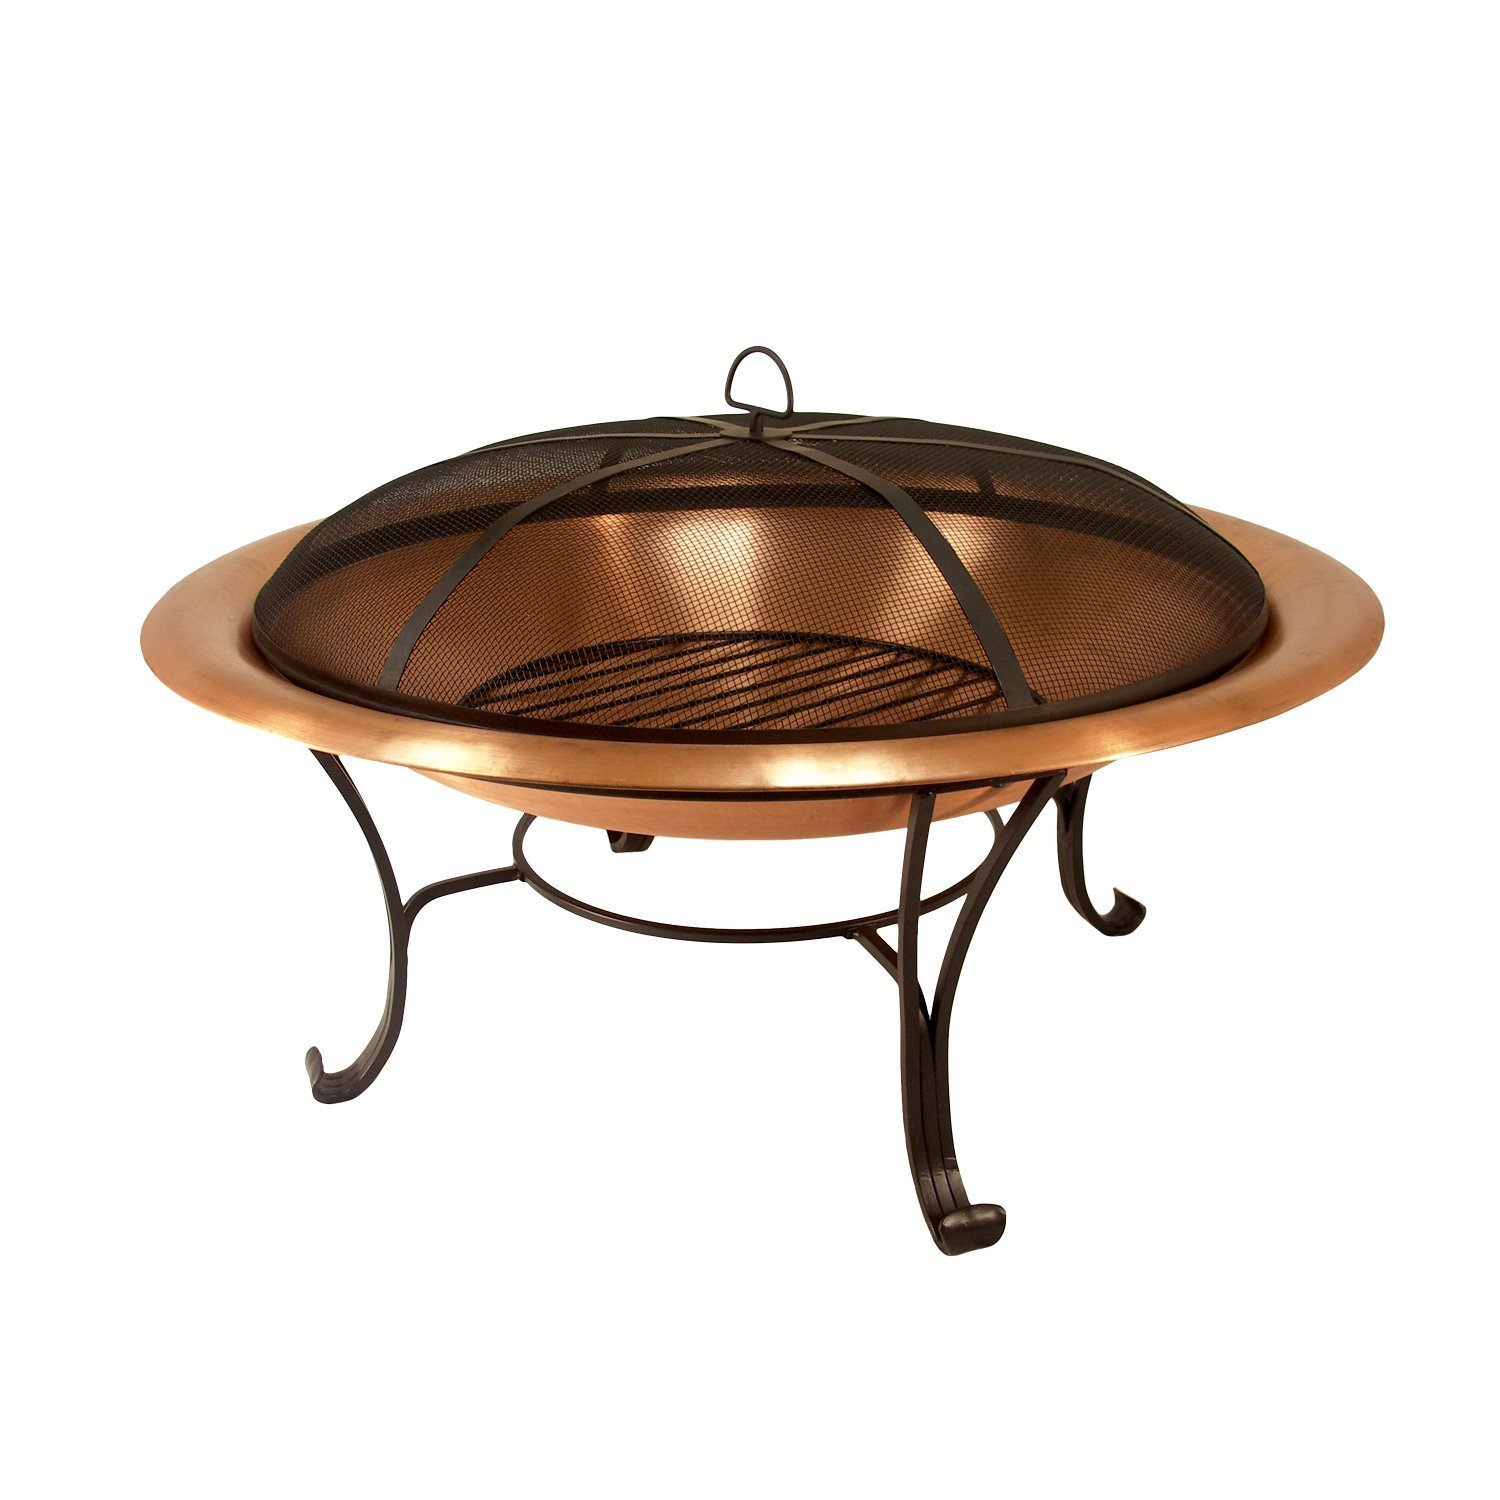 Cheap Log Fire Pit, find Log Fire Pit deals on line at Alibaba.com